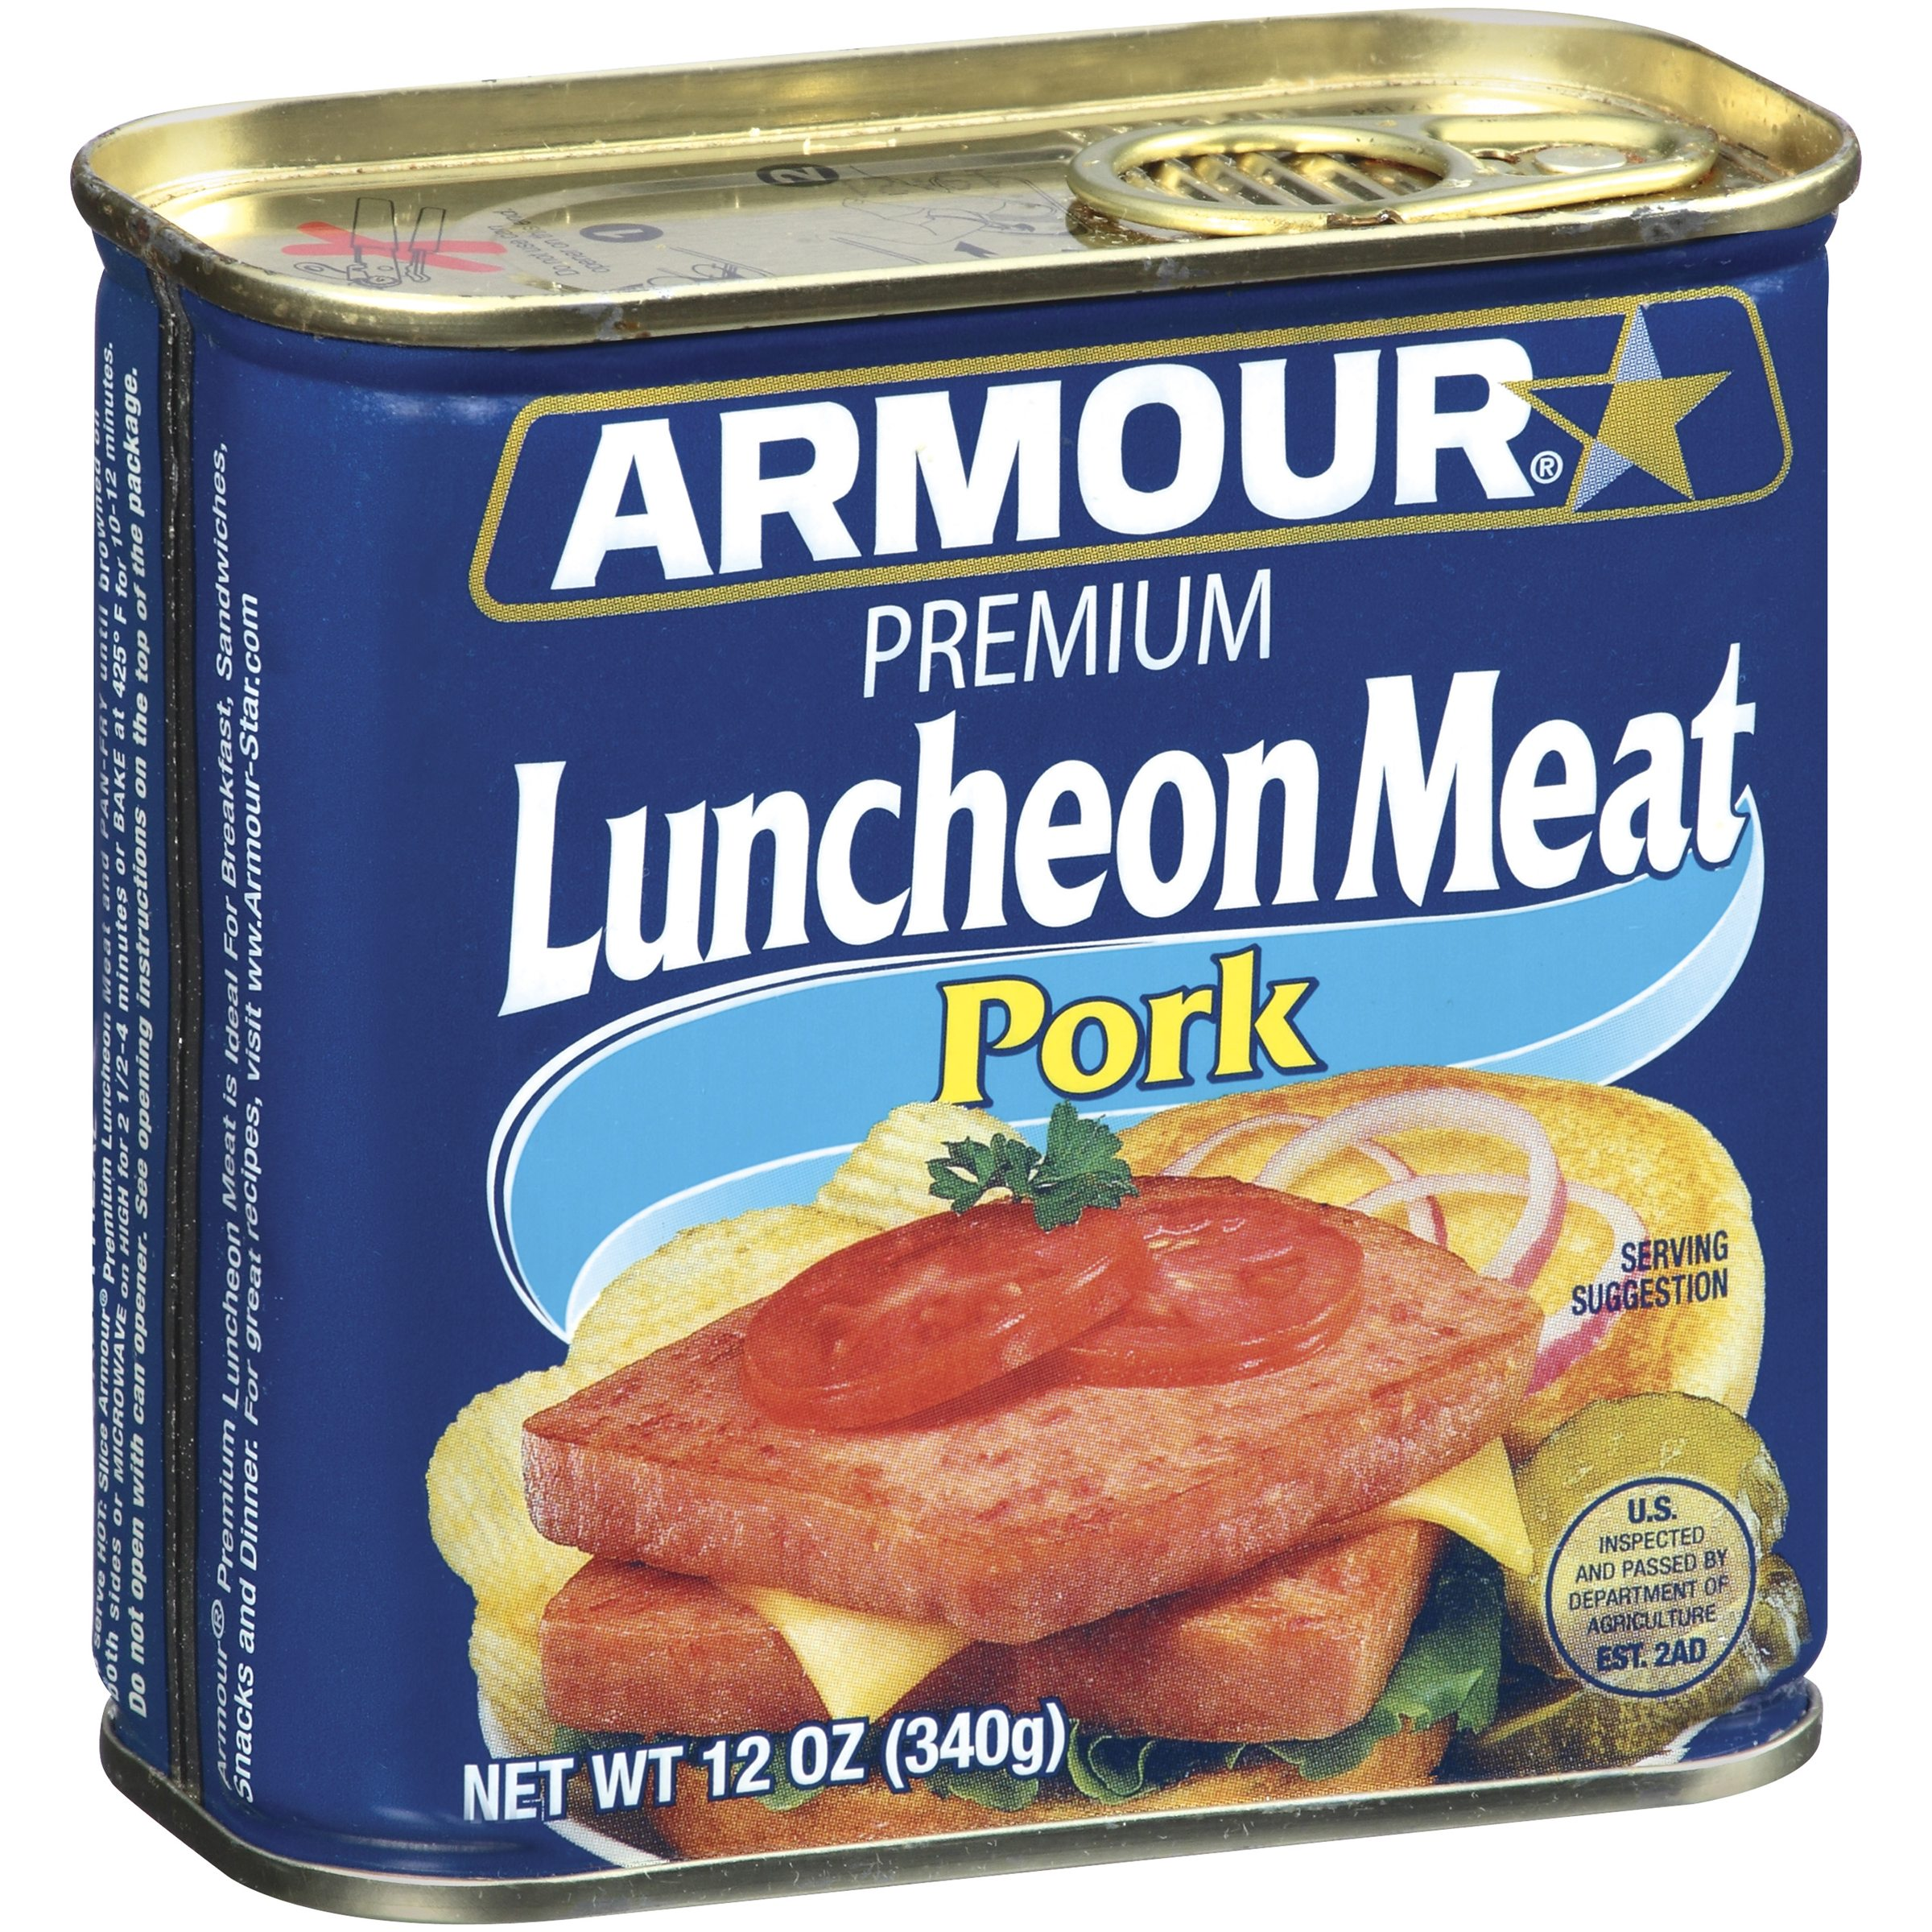 Armour Premium Pork Luncheon Meat 12 oz. Can by Pinnacle Foods Group, Llc